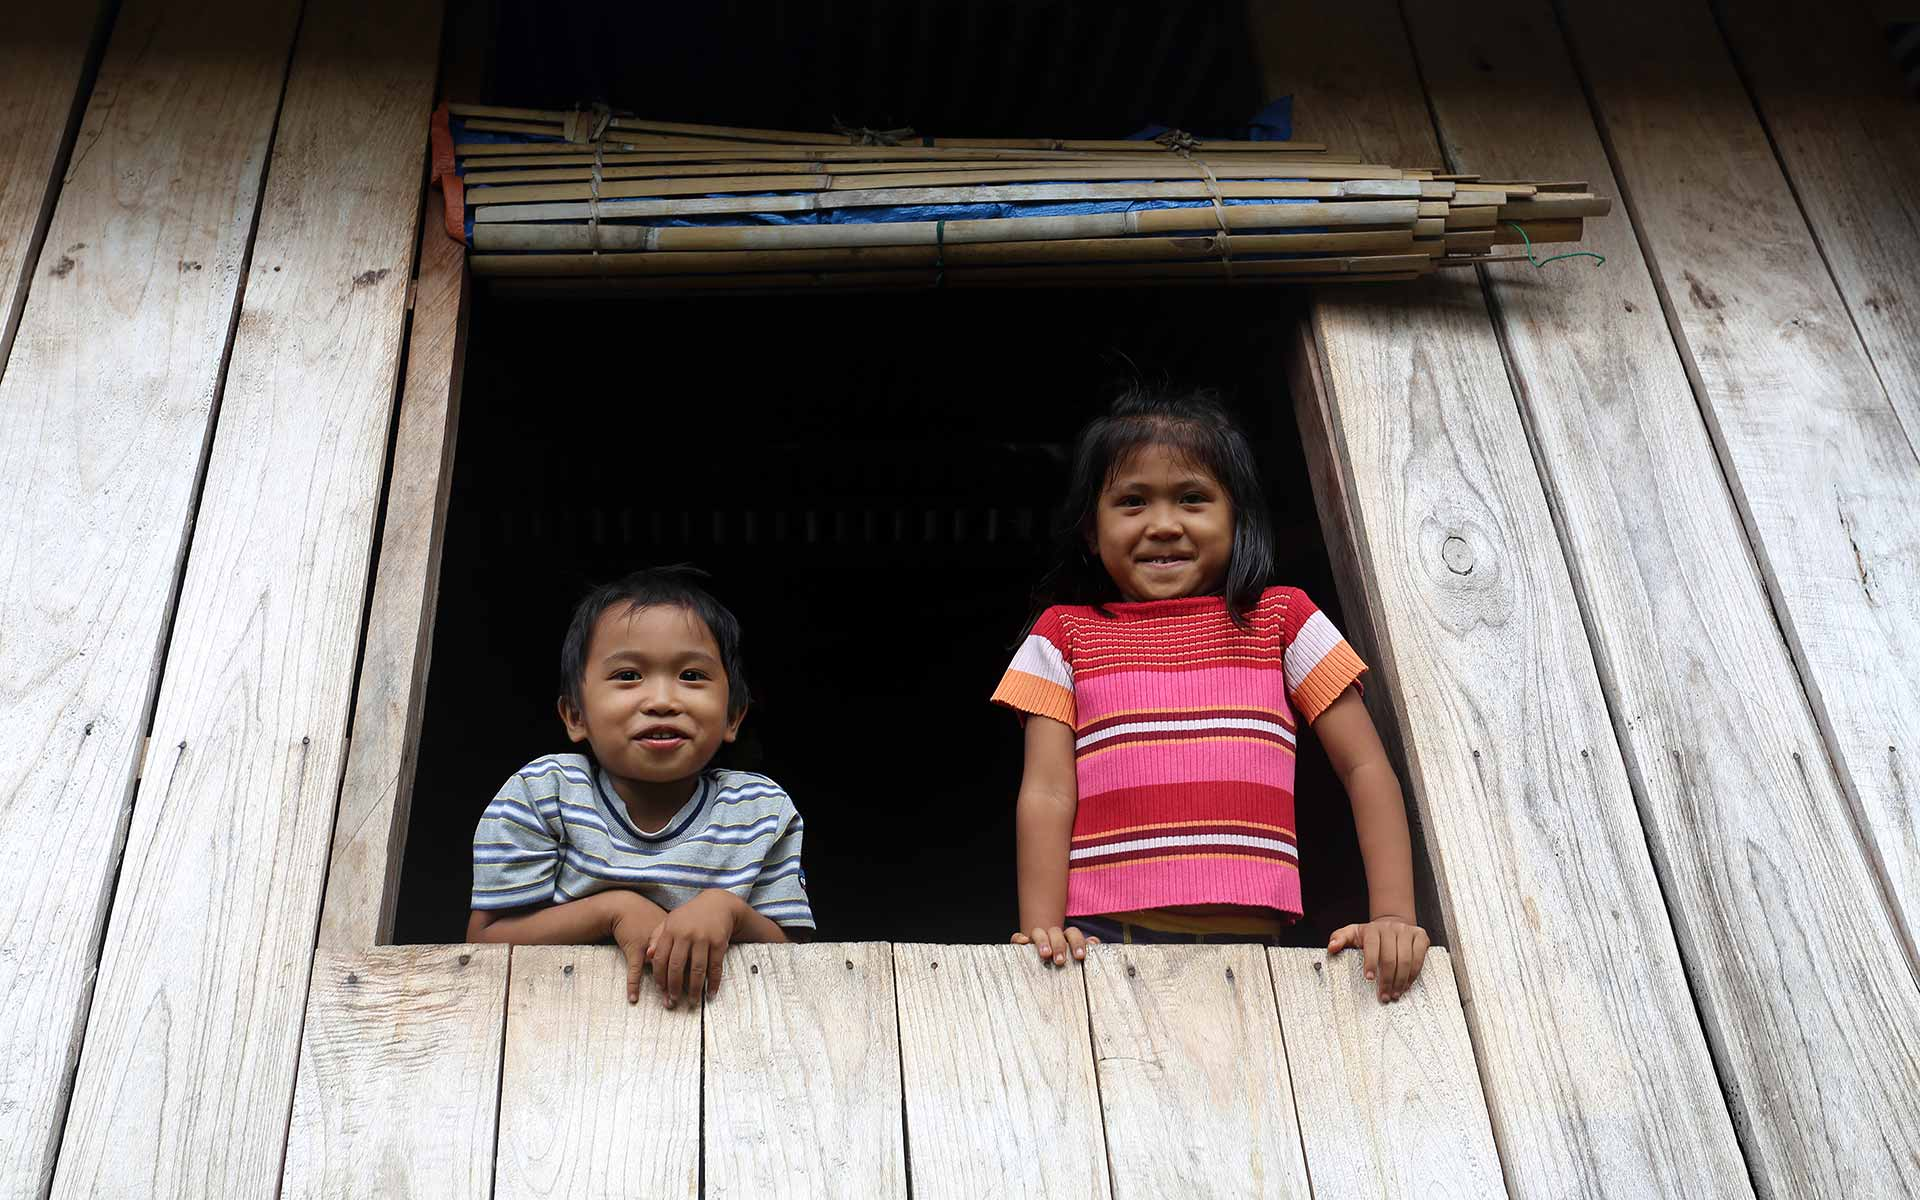 A young brother and sister smile as they look out a window